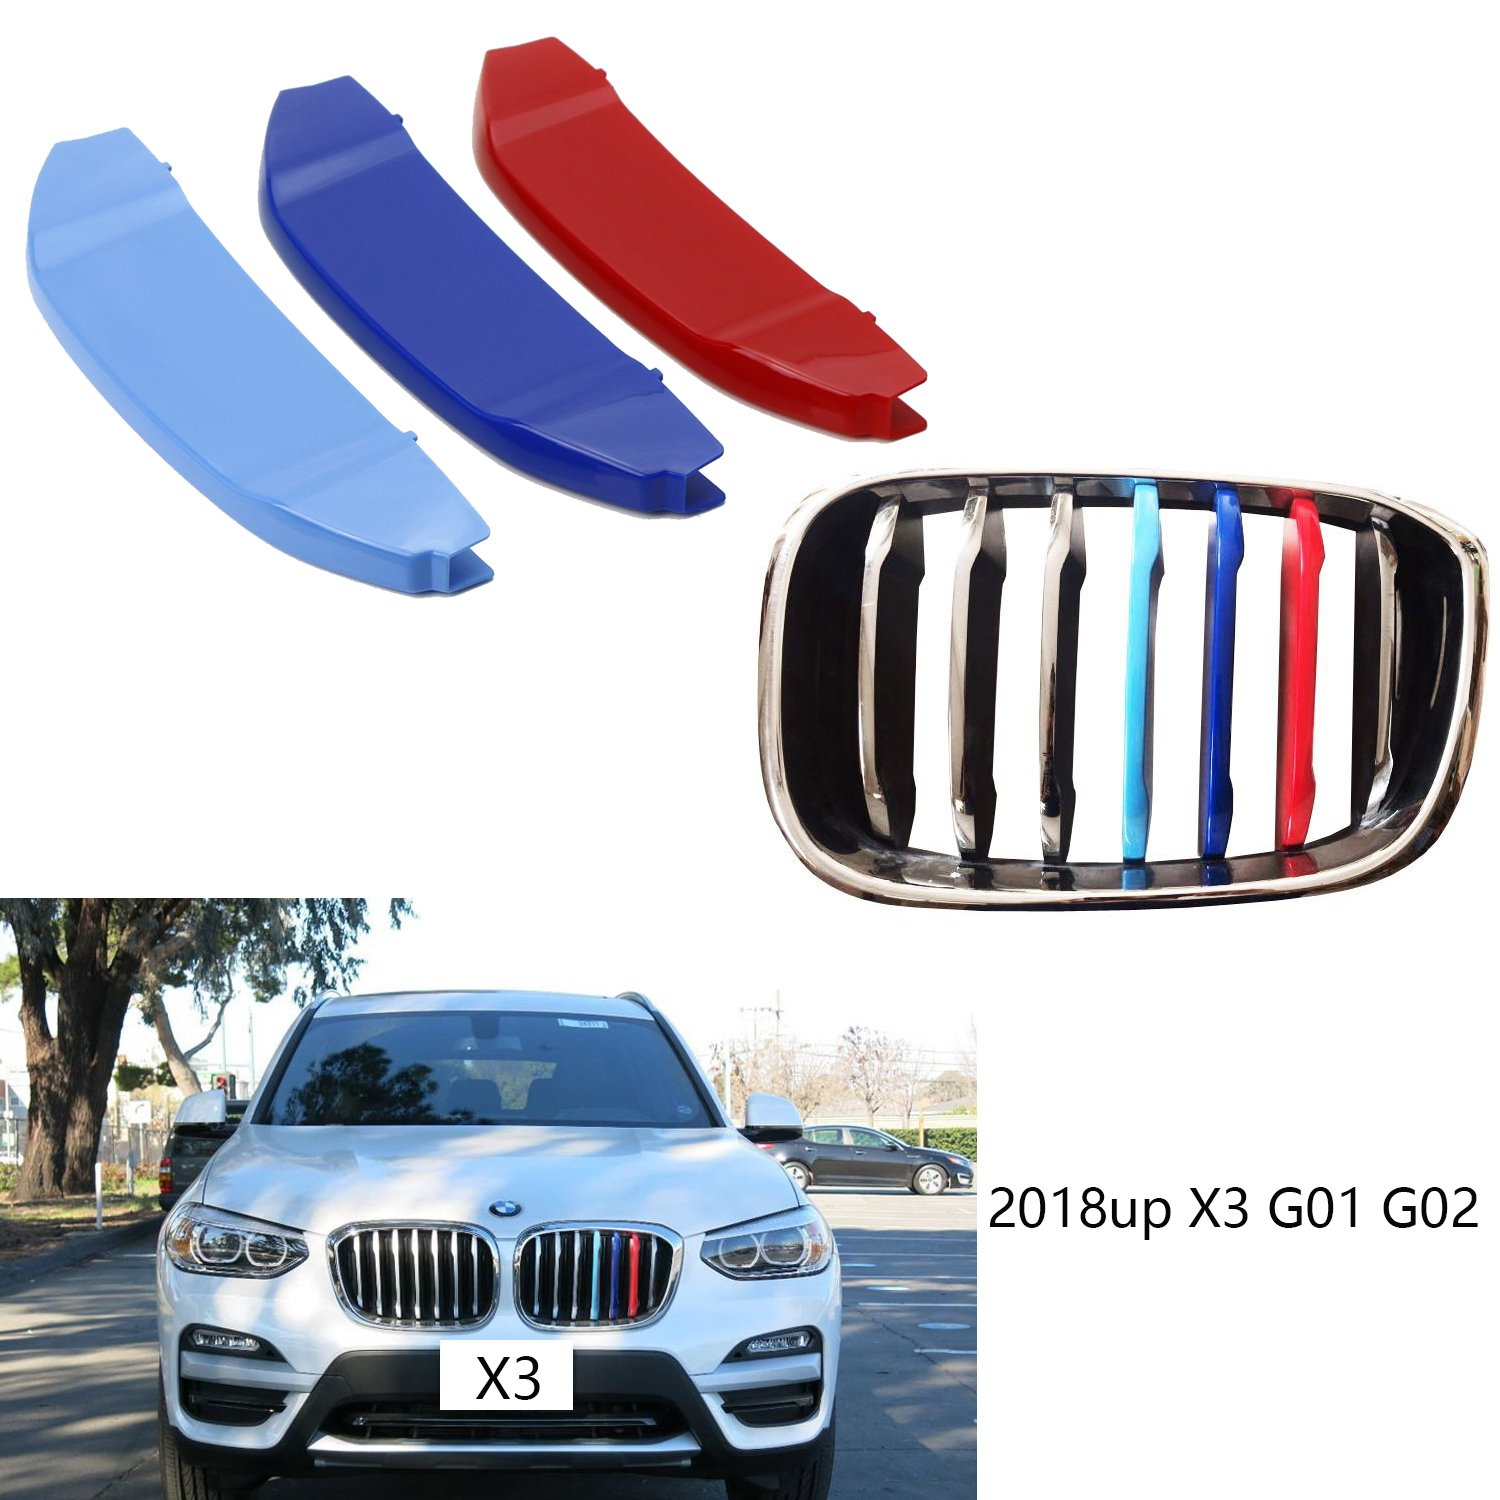 lanyun M Color X Series Grille Insert Trims Decorate for BMW G01 X3 or G02 x4 Grill Stripes (18-up G01 G02 X3 7-Beam grillr Insert)